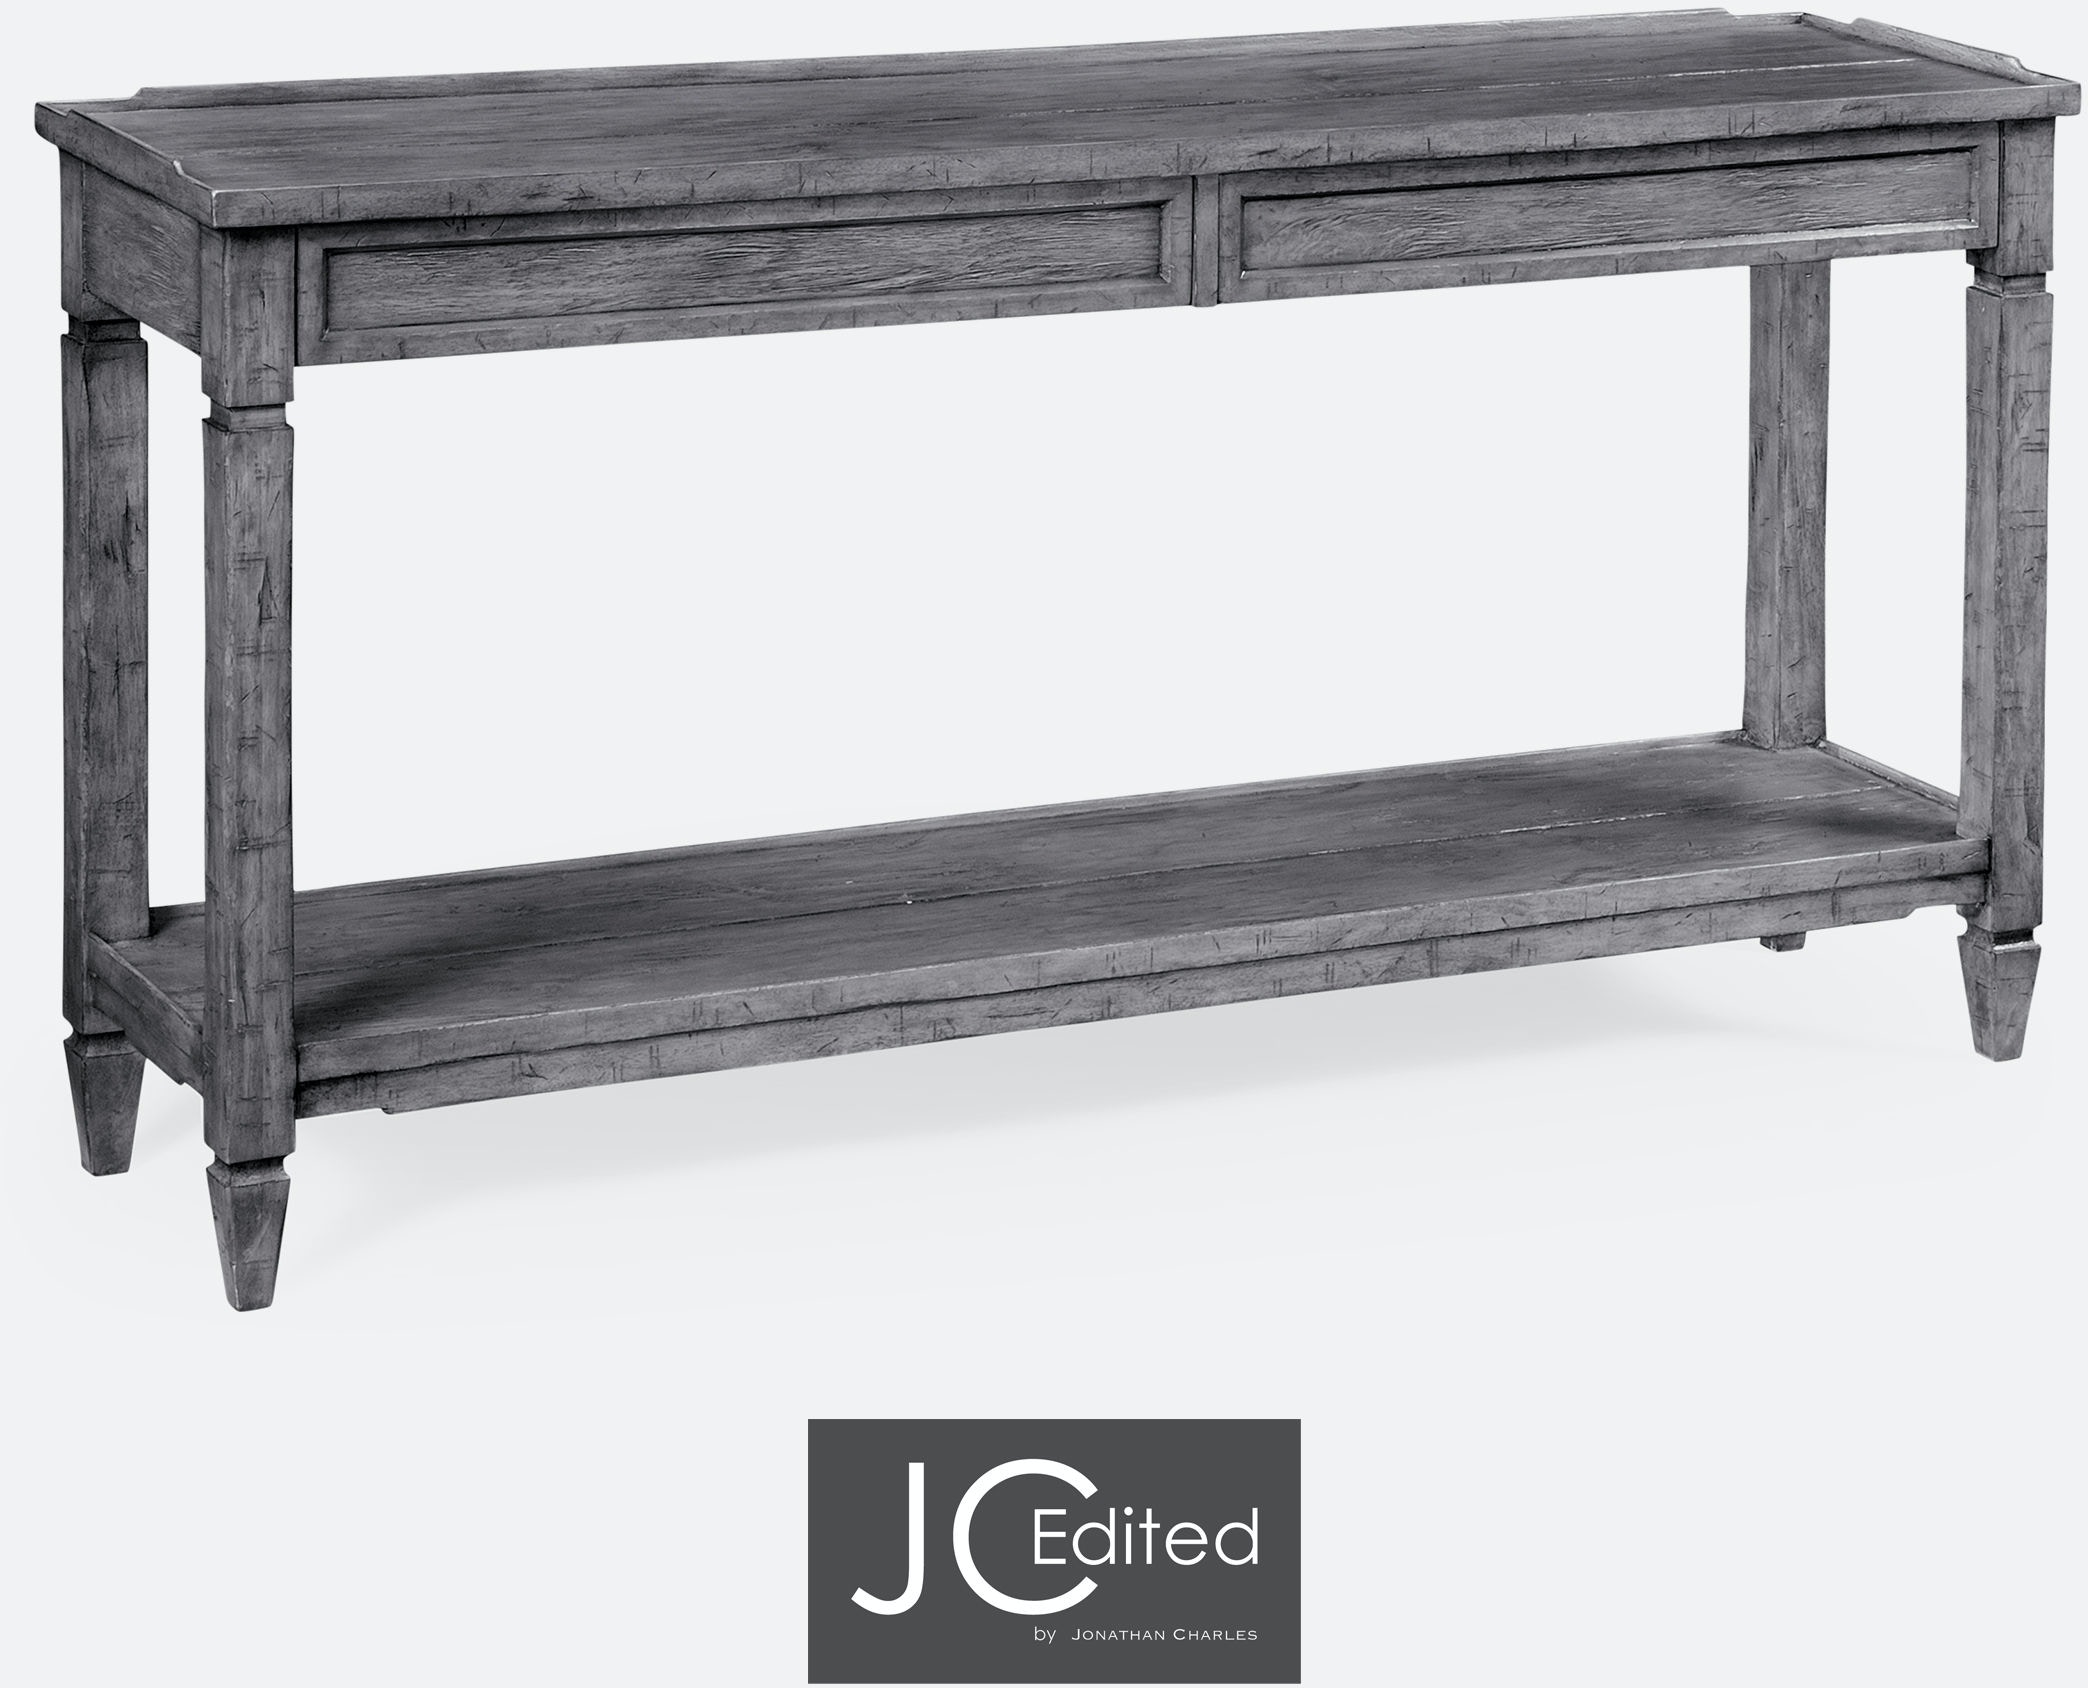 jonathan charles 491024 adg console table with drawers in antique